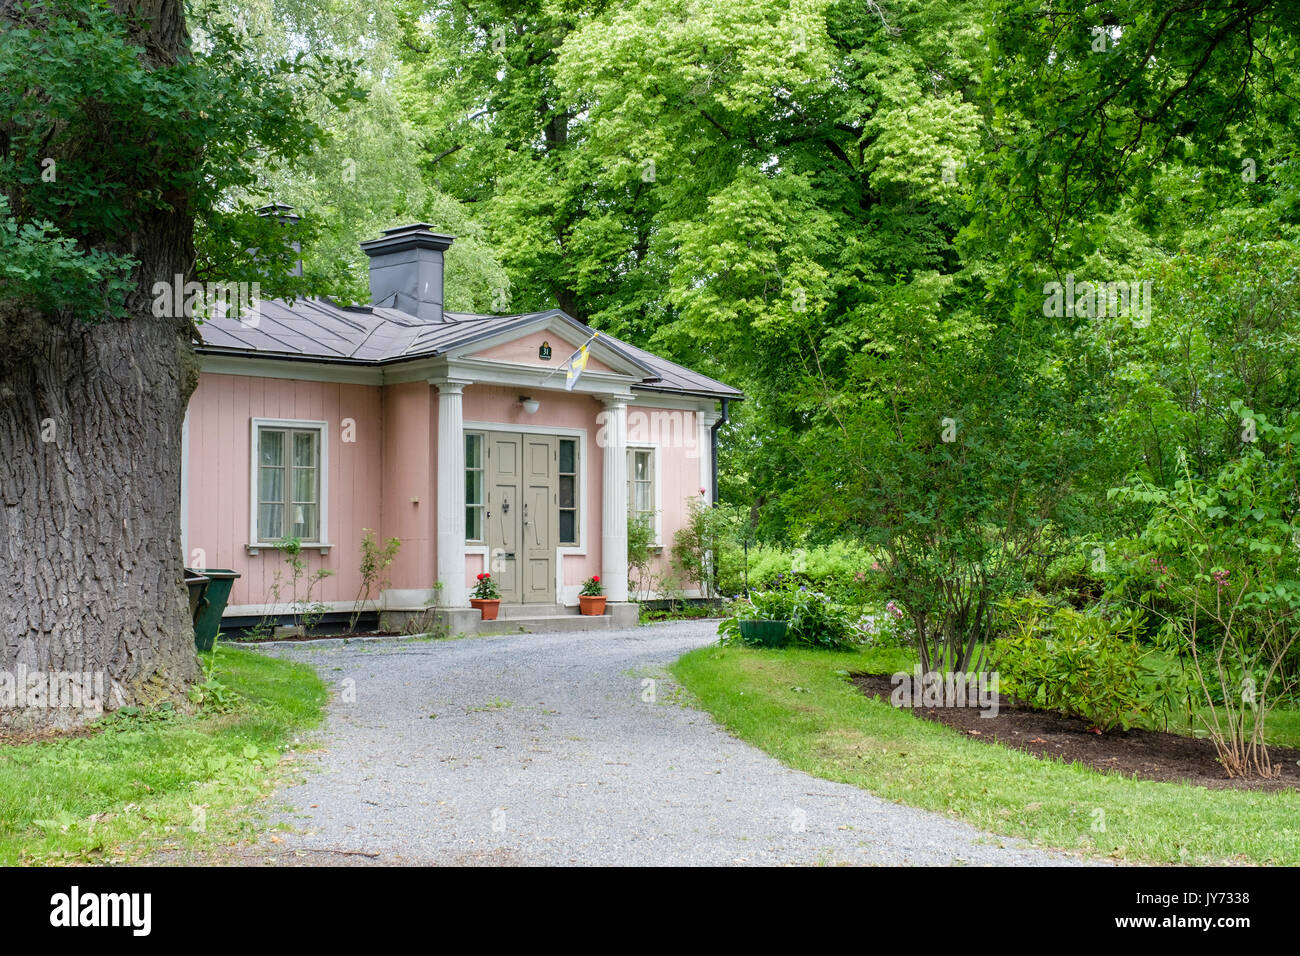 Historic residential building at Djurgarden in Stockholm. Djurgarden is a recreational area. - Stock Image